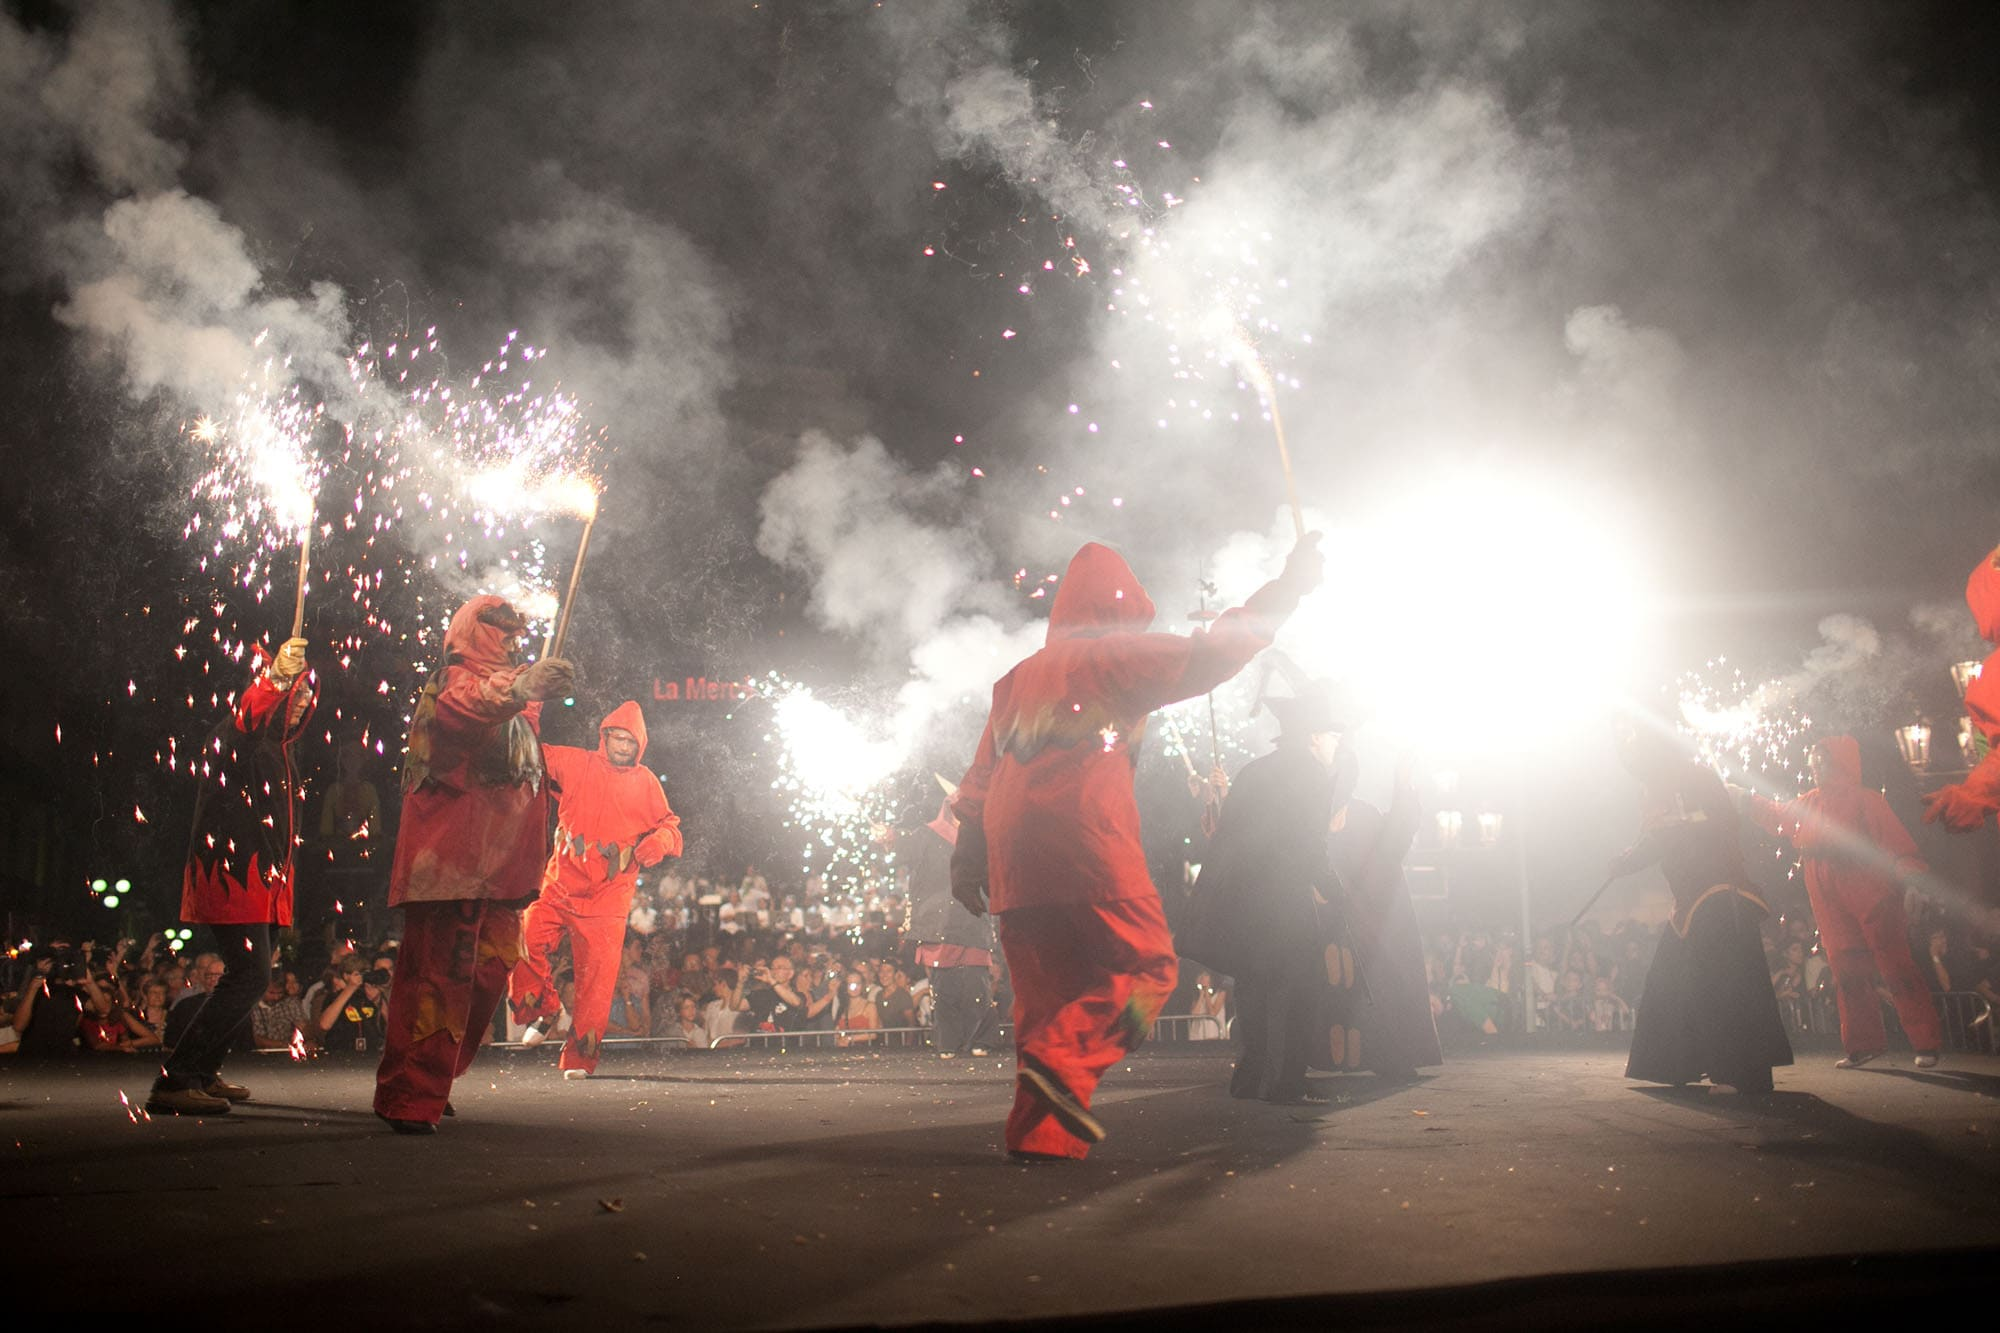 Correfoc at the Opening Ceremony of La Mercè 2011 in Barcelona, Spain